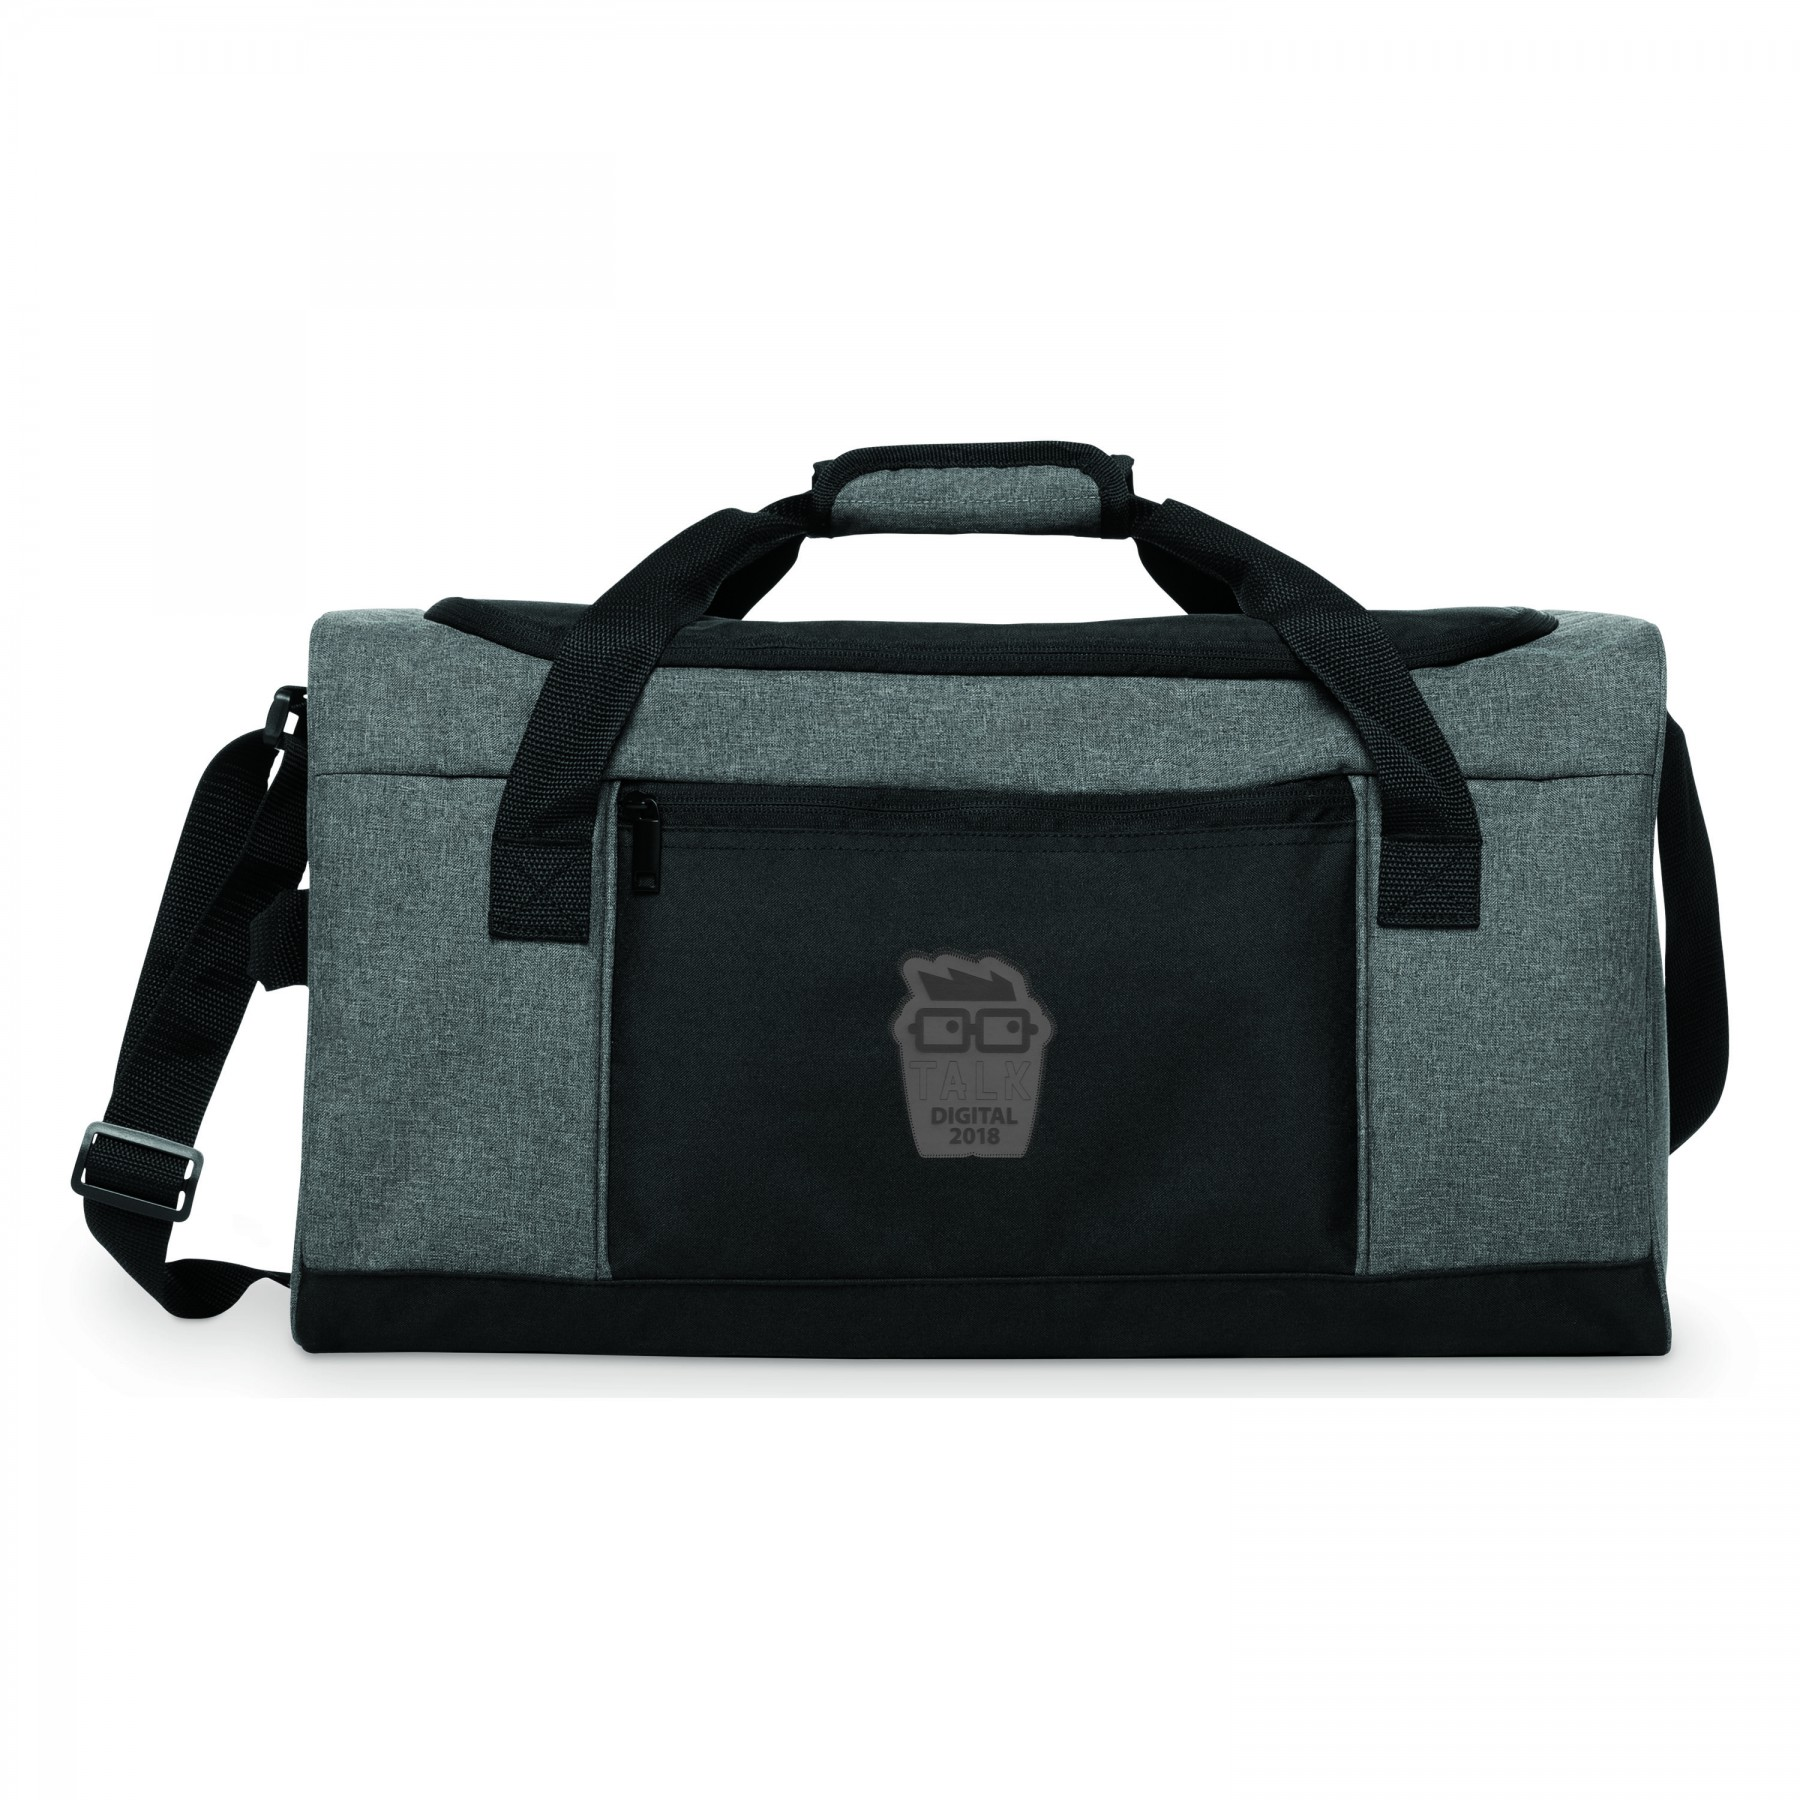 Business Smart Duffle, BG200, One Colour Imprint